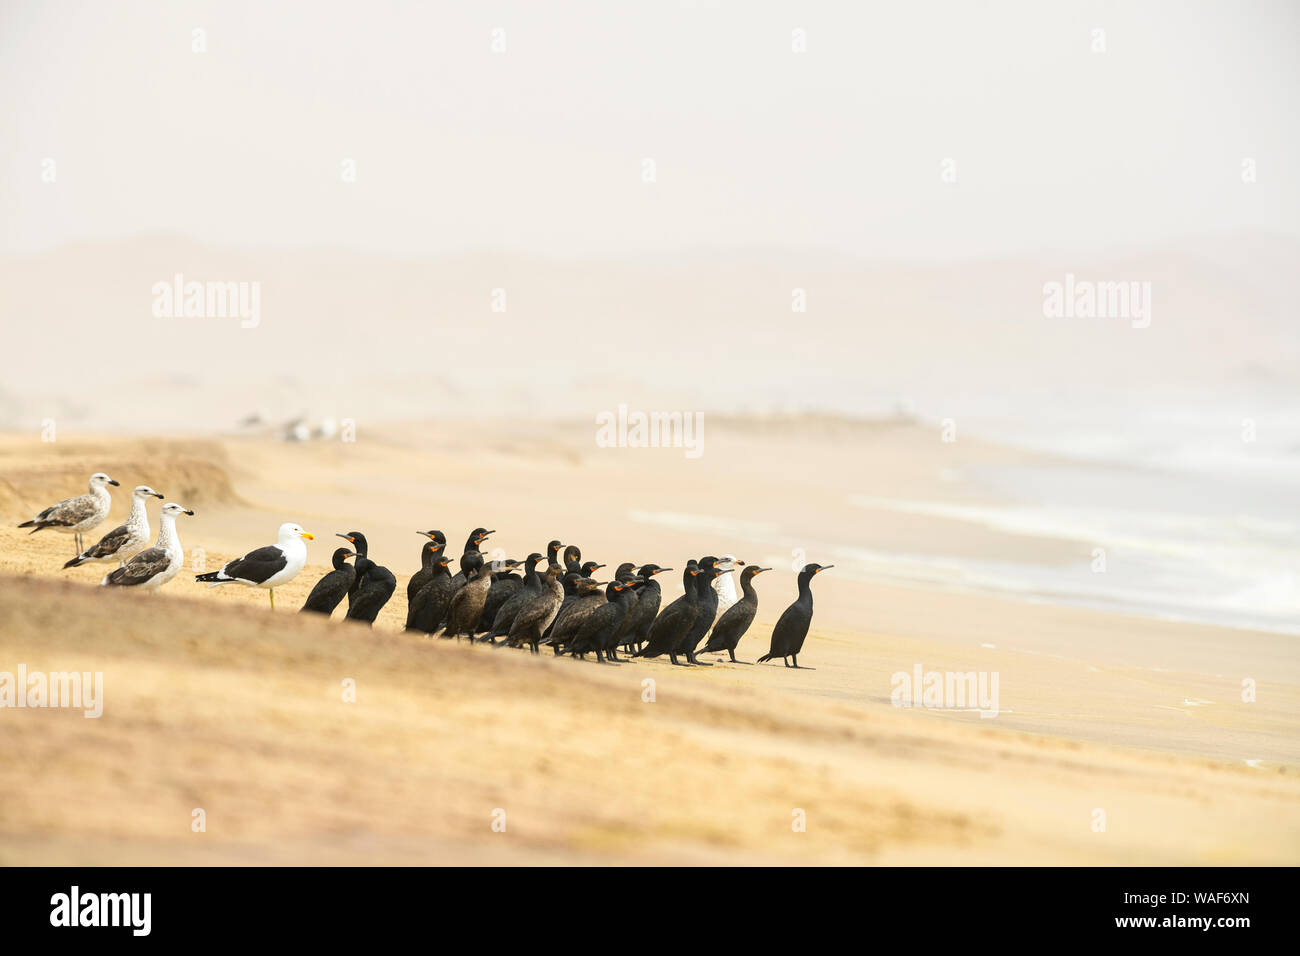 Cape Cormorant - Phalacrocorax capensis, endangered cormorant species from Southwest African coasts and mangroves, Walvis Bay, Namibia Stock Photo